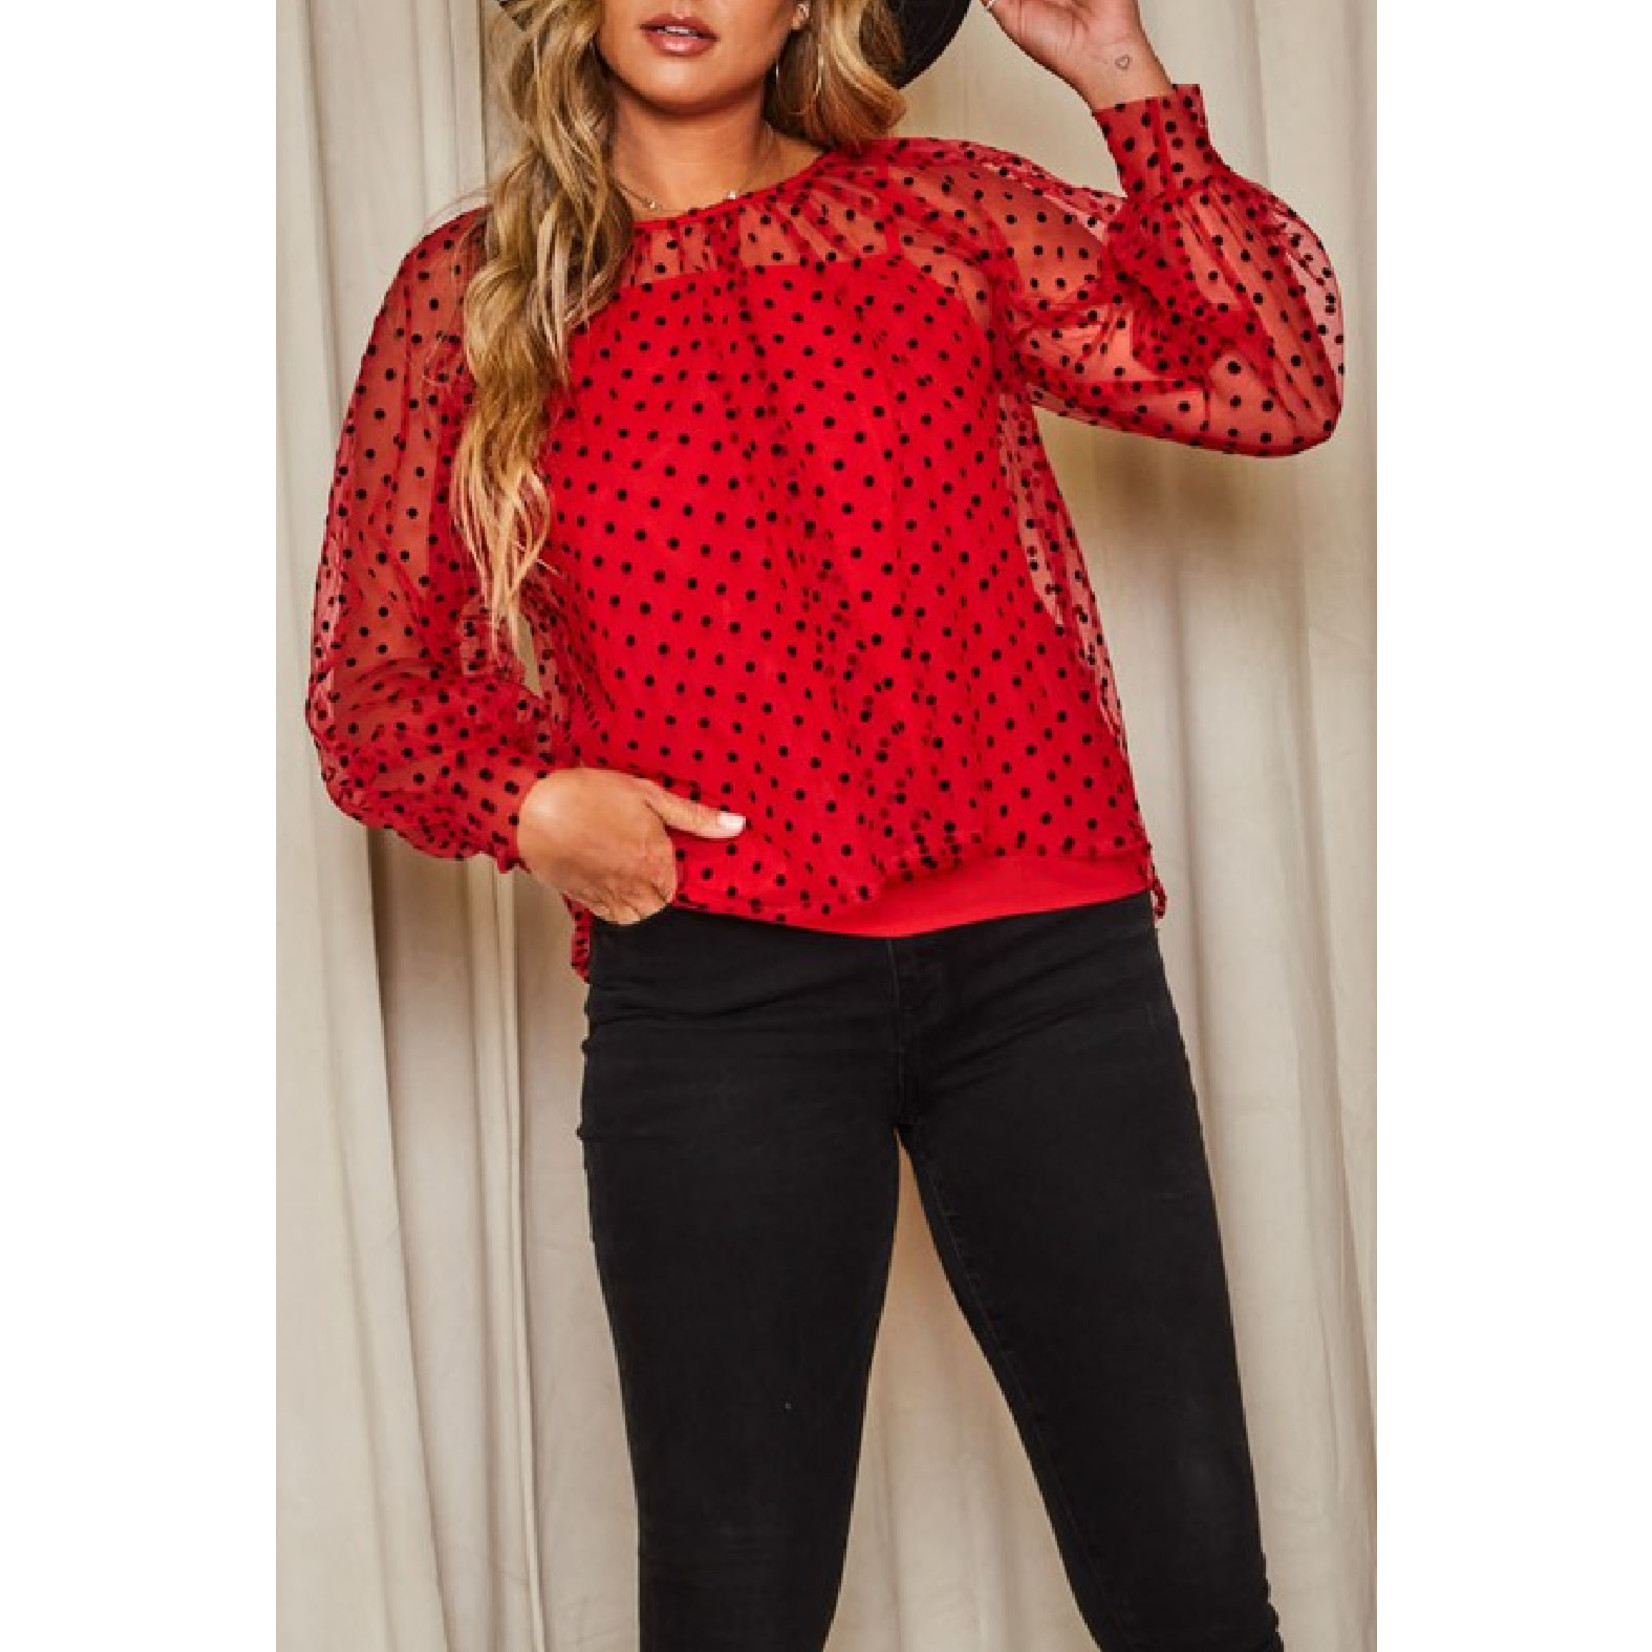 Peach Love CA Dotted Blouse with Cami